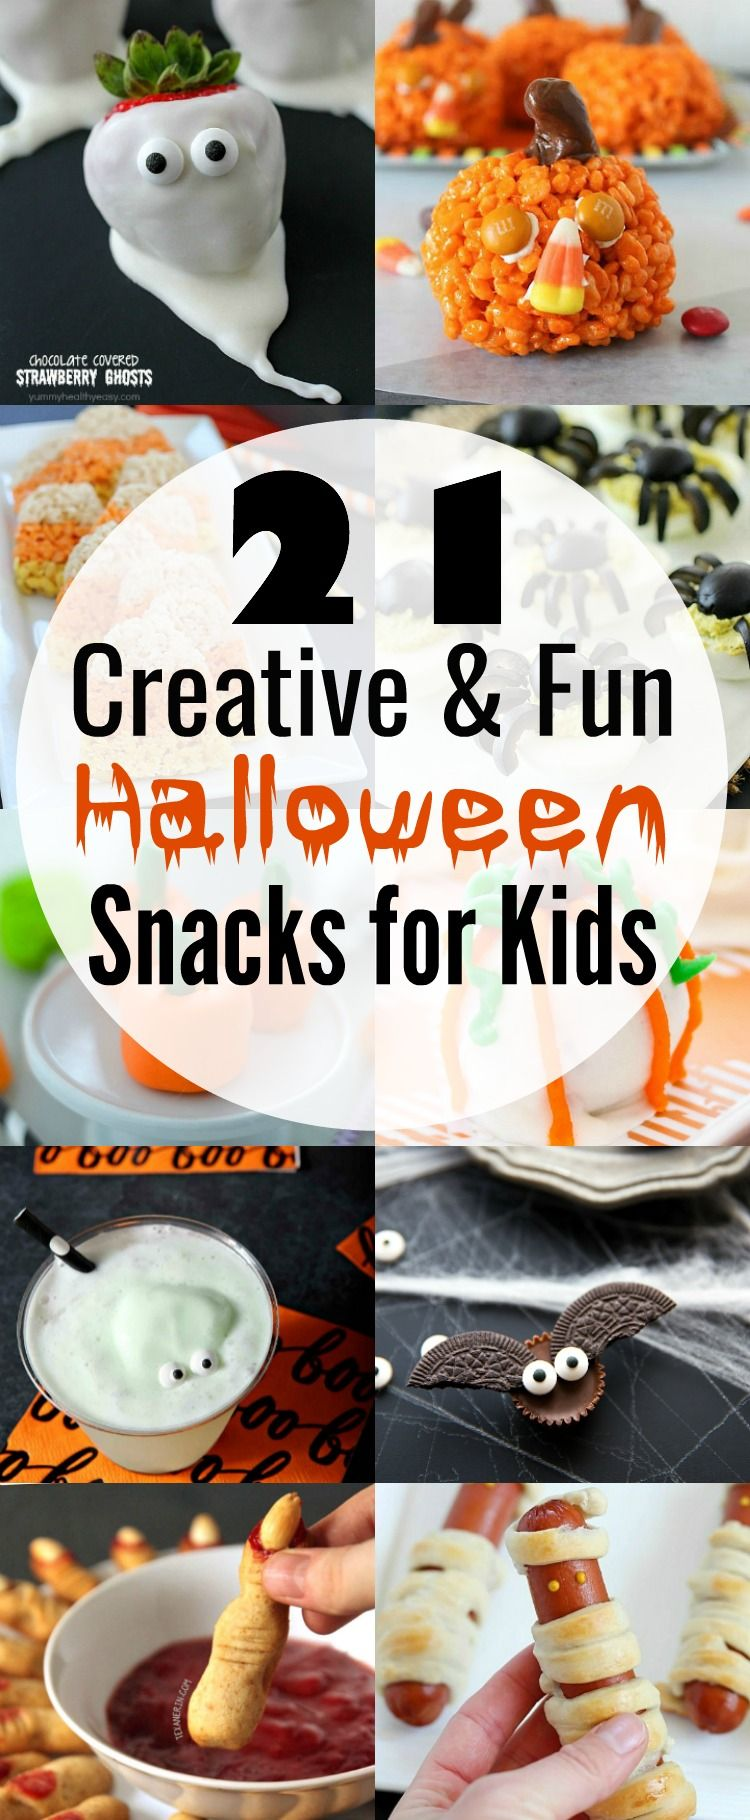 Your Little Ghouls Will Love These 21 Insanely Adorable Halloween Snacks That Are Fun Halloween Snacks Halloween Snacks For Kids Easy Halloween Food